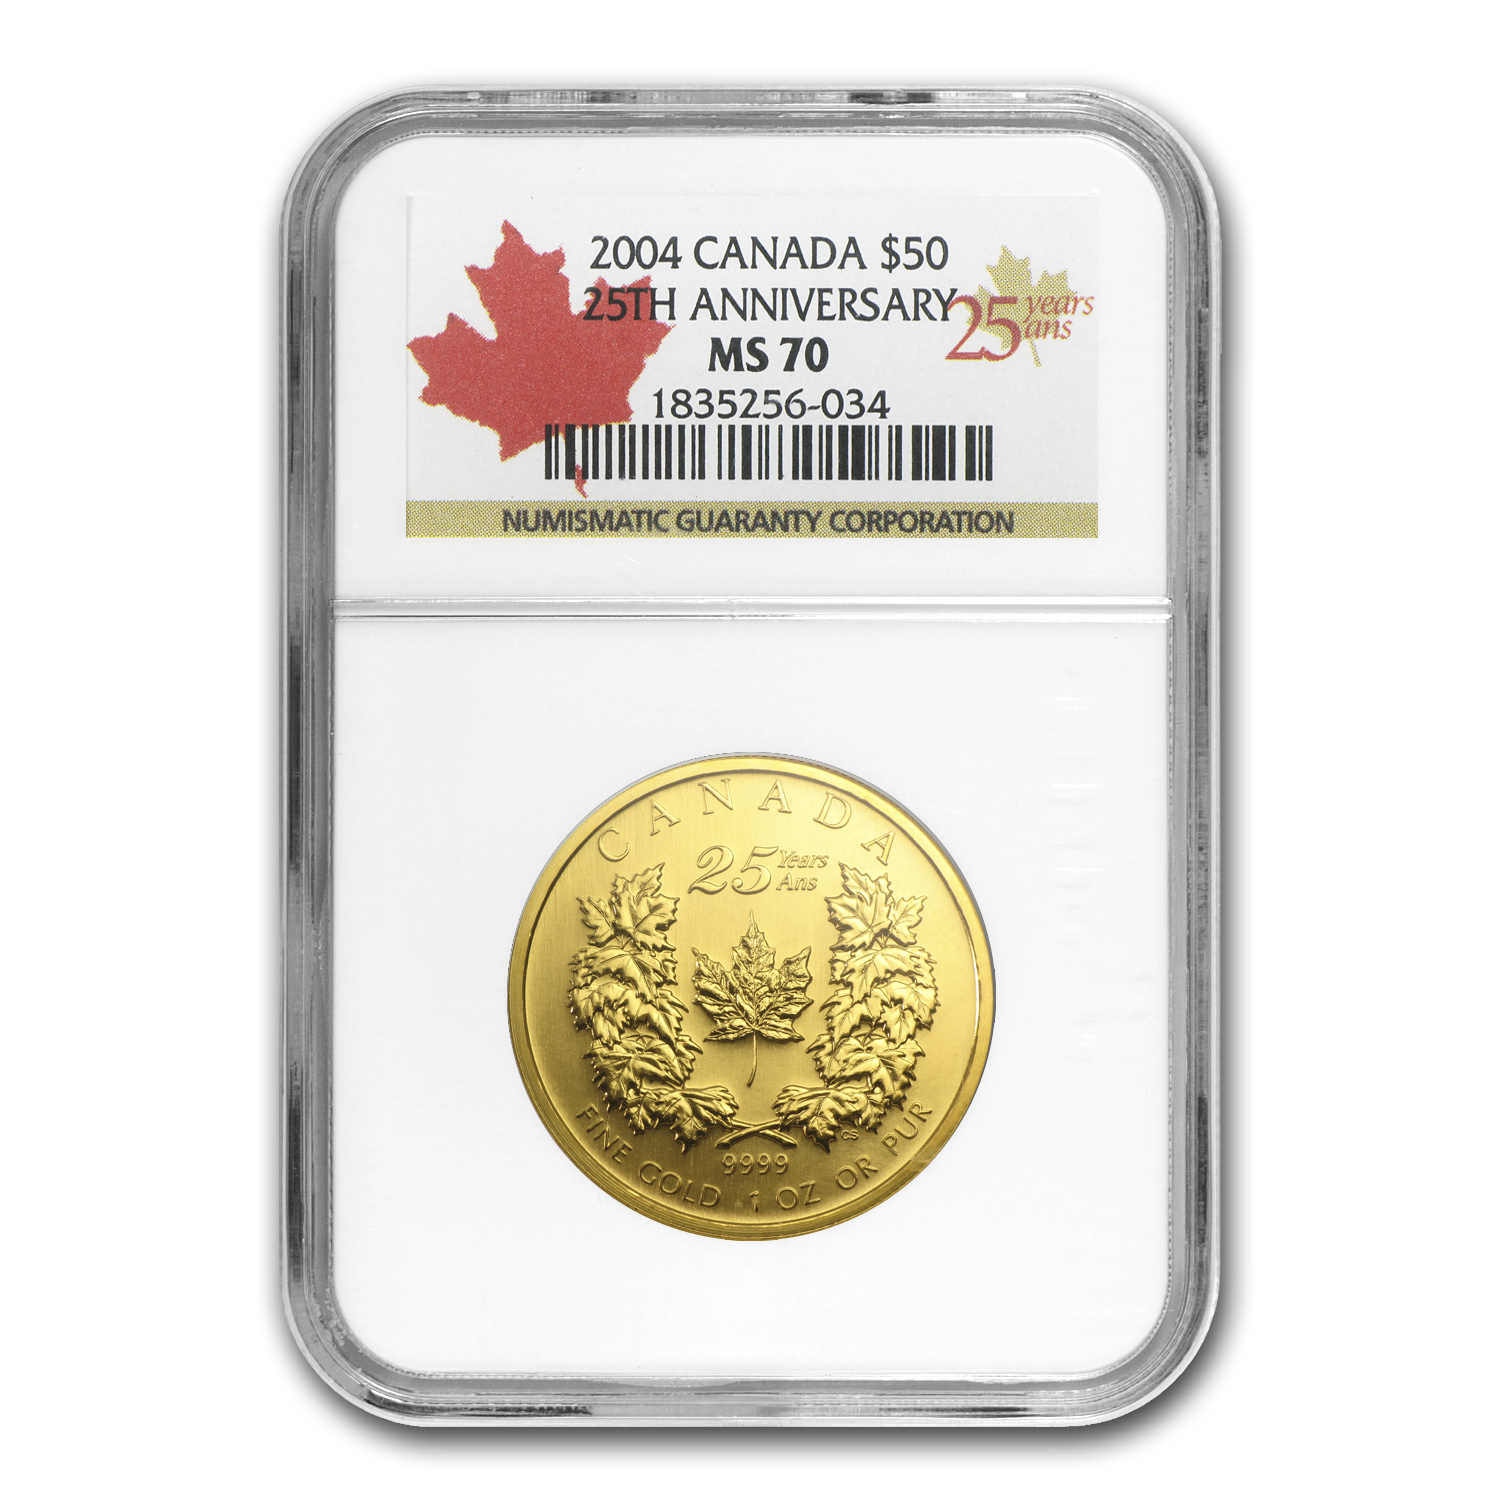 2004 1 oz Gold Canadian Maple Leaf (25th Ann) MS-70 NGC